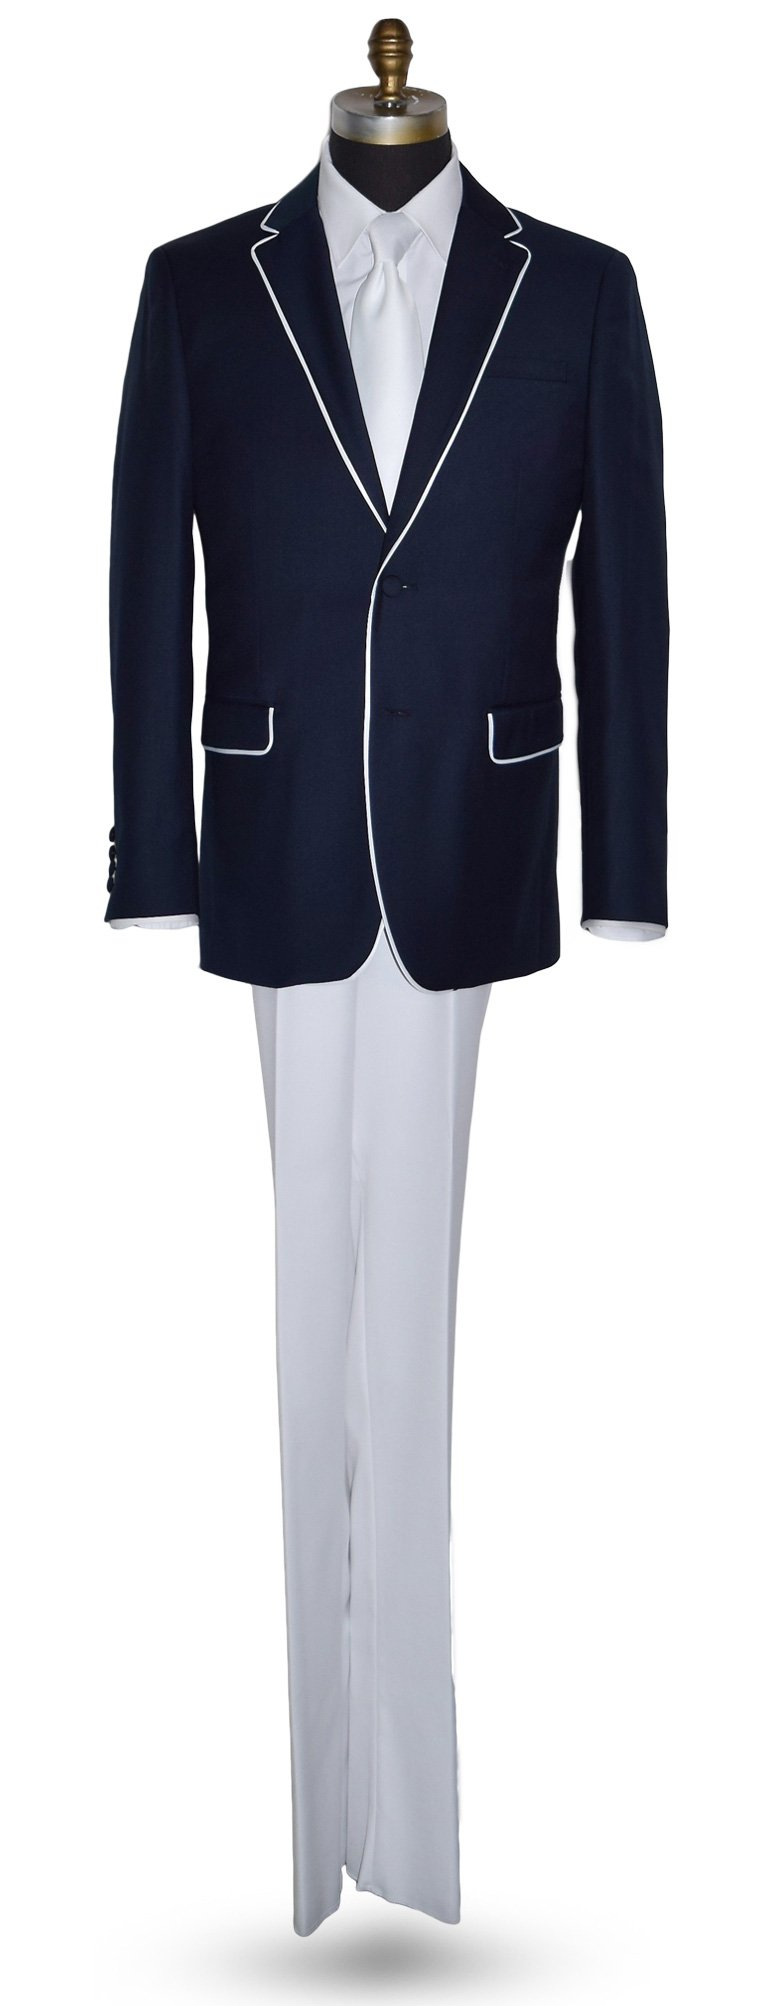 NAVY MENS SUIT COAT WITH WHITE PANTS 100% LUXURY WOOL